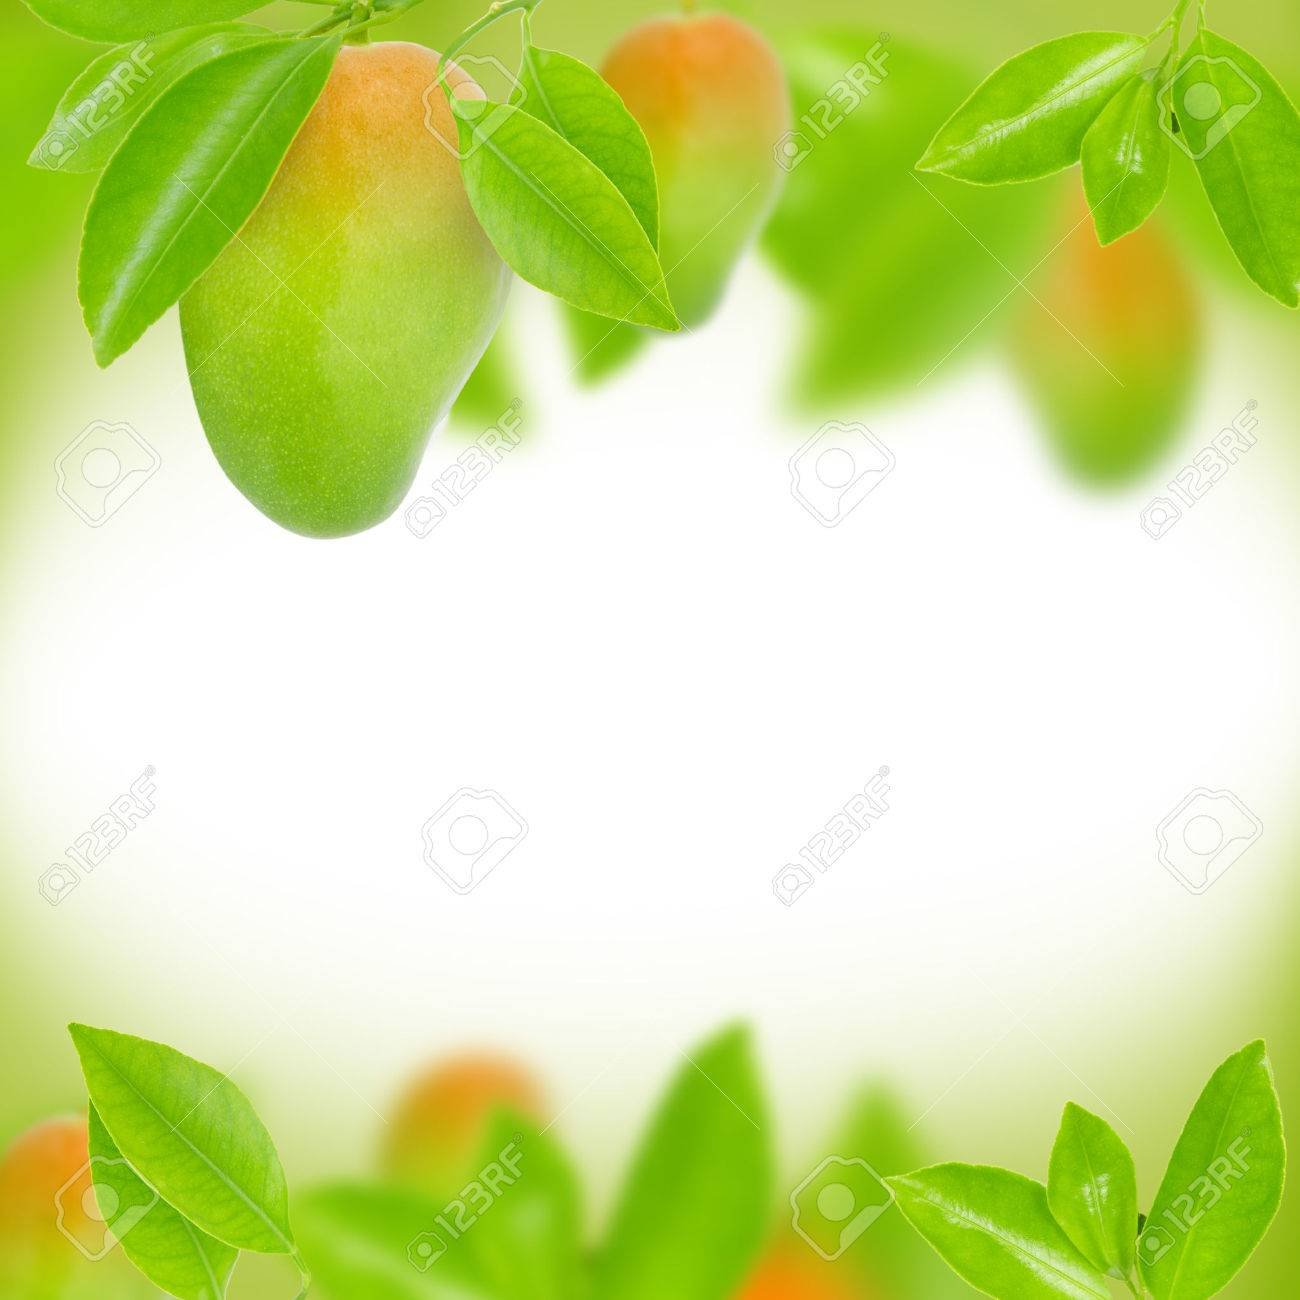 Abstract Background Made Of Mango And Leaves Stock Photo Picture 1300x1300